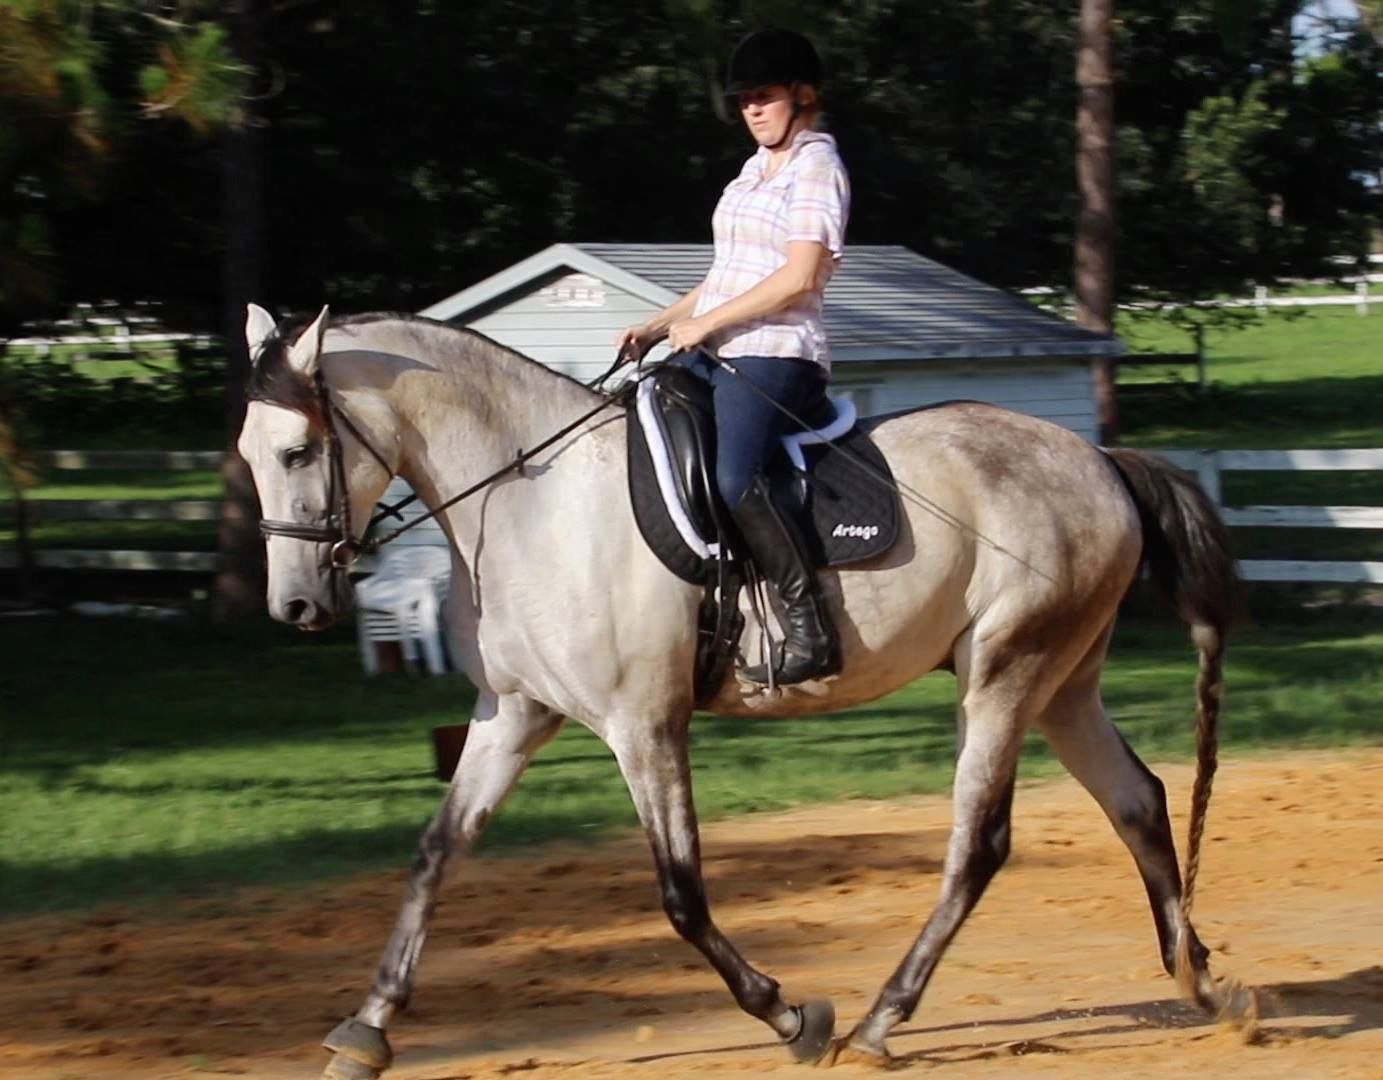 Pin by Pat Noon on Horse Geek in 2020   Horses, Animals